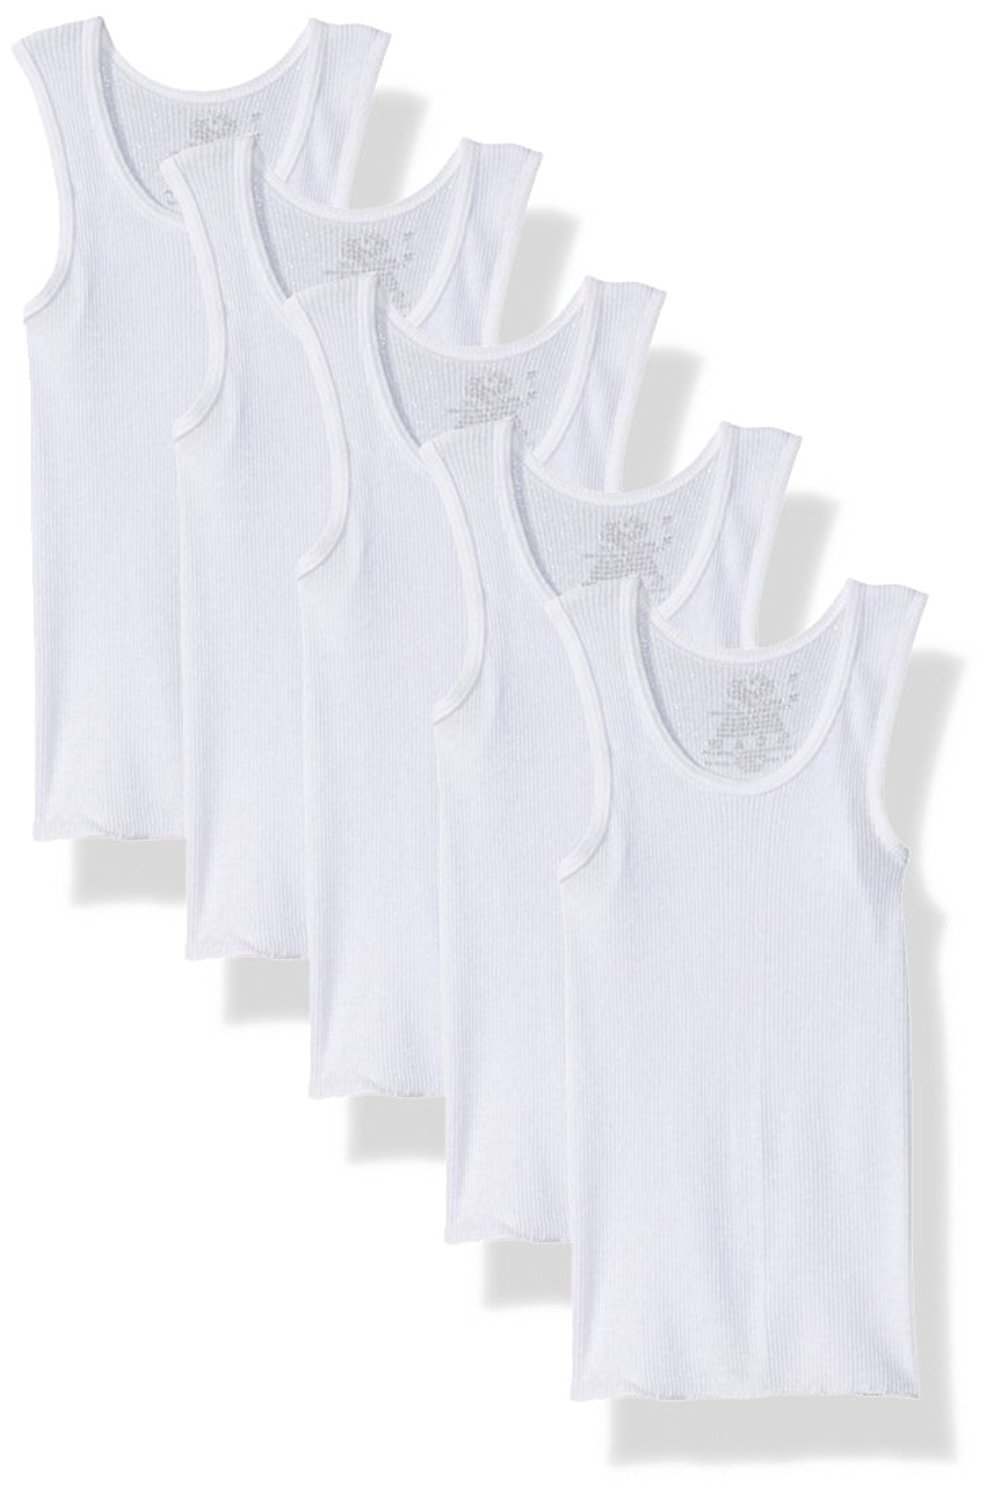 Fruit Of The Loom Little Boys' A-Shirt (Pack Of 5) (White, Small(44-68 lbs/45''-52'' Chest))